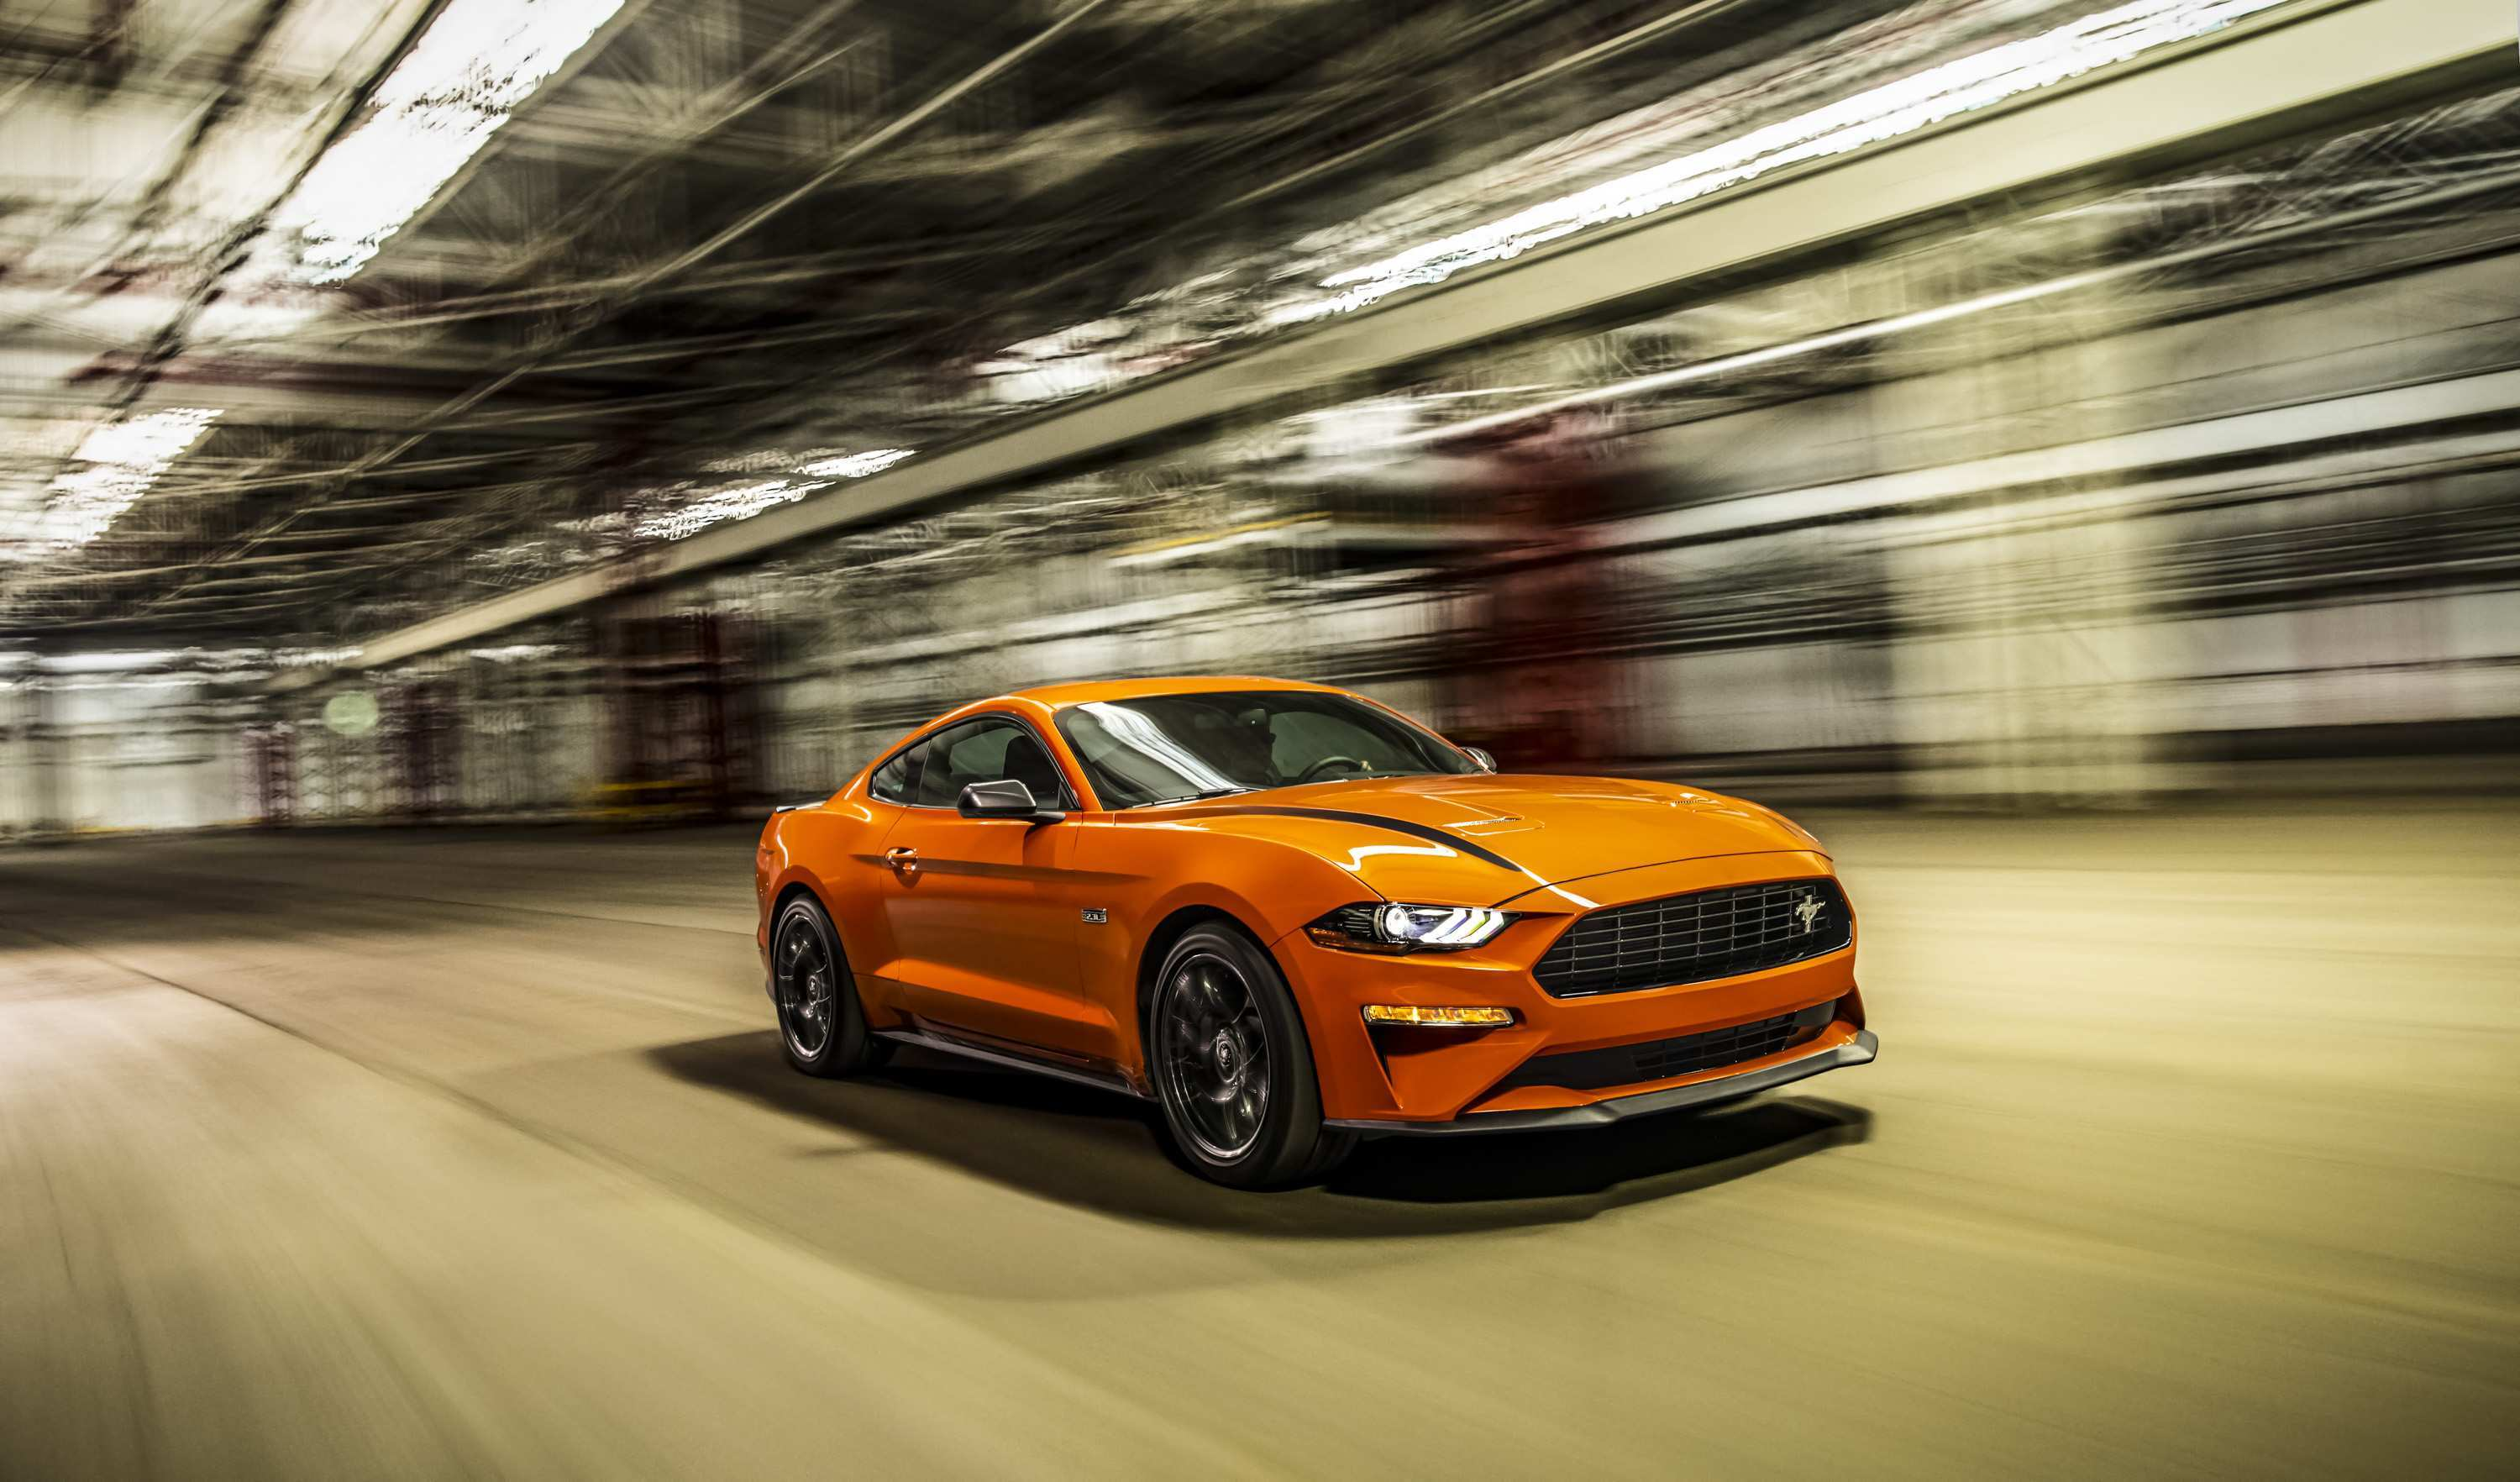 56 Best Review Ford Performance Vehicles By 2020 Style with Ford Performance Vehicles By 2020